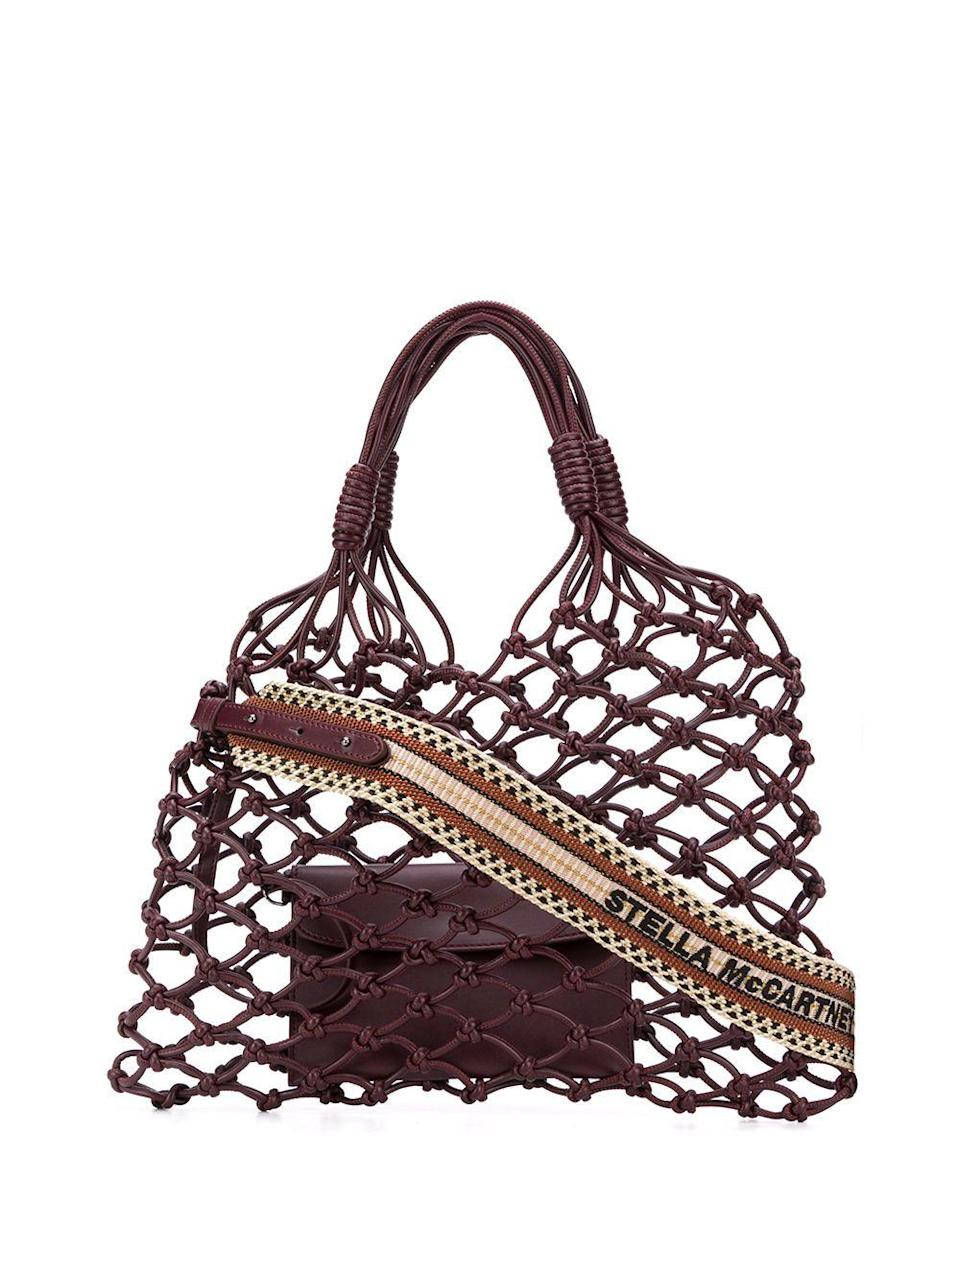 """<p><strong>Stella McCartney</strong></p><p>farfetch.com</p><p><strong>$925.00</strong></p><p><a href=""""https://go.redirectingat.com?id=74968X1596630&url=https%3A%2F%2Fwww.farfetch.com%2Fshopping%2Fwomen%2Fstella-mccartney-knotted-structure-tote-item-14920876.aspx&sref=https%3A%2F%2Fwww.townandcountrymag.com%2Fstyle%2Ffashion-trends%2Fg32701003%2Feco-friendly-gifts%2F"""" rel=""""nofollow noopener"""" target=""""_blank"""" data-ylk=""""slk:Shop Now"""" class=""""link rapid-noclick-resp"""">Shop Now</a></p><p>Stella McCartney has been practicing sustainability long before it became a buzzword. This faux leather bag will make you the chicest shopper at the farmer's market.<br></p>"""